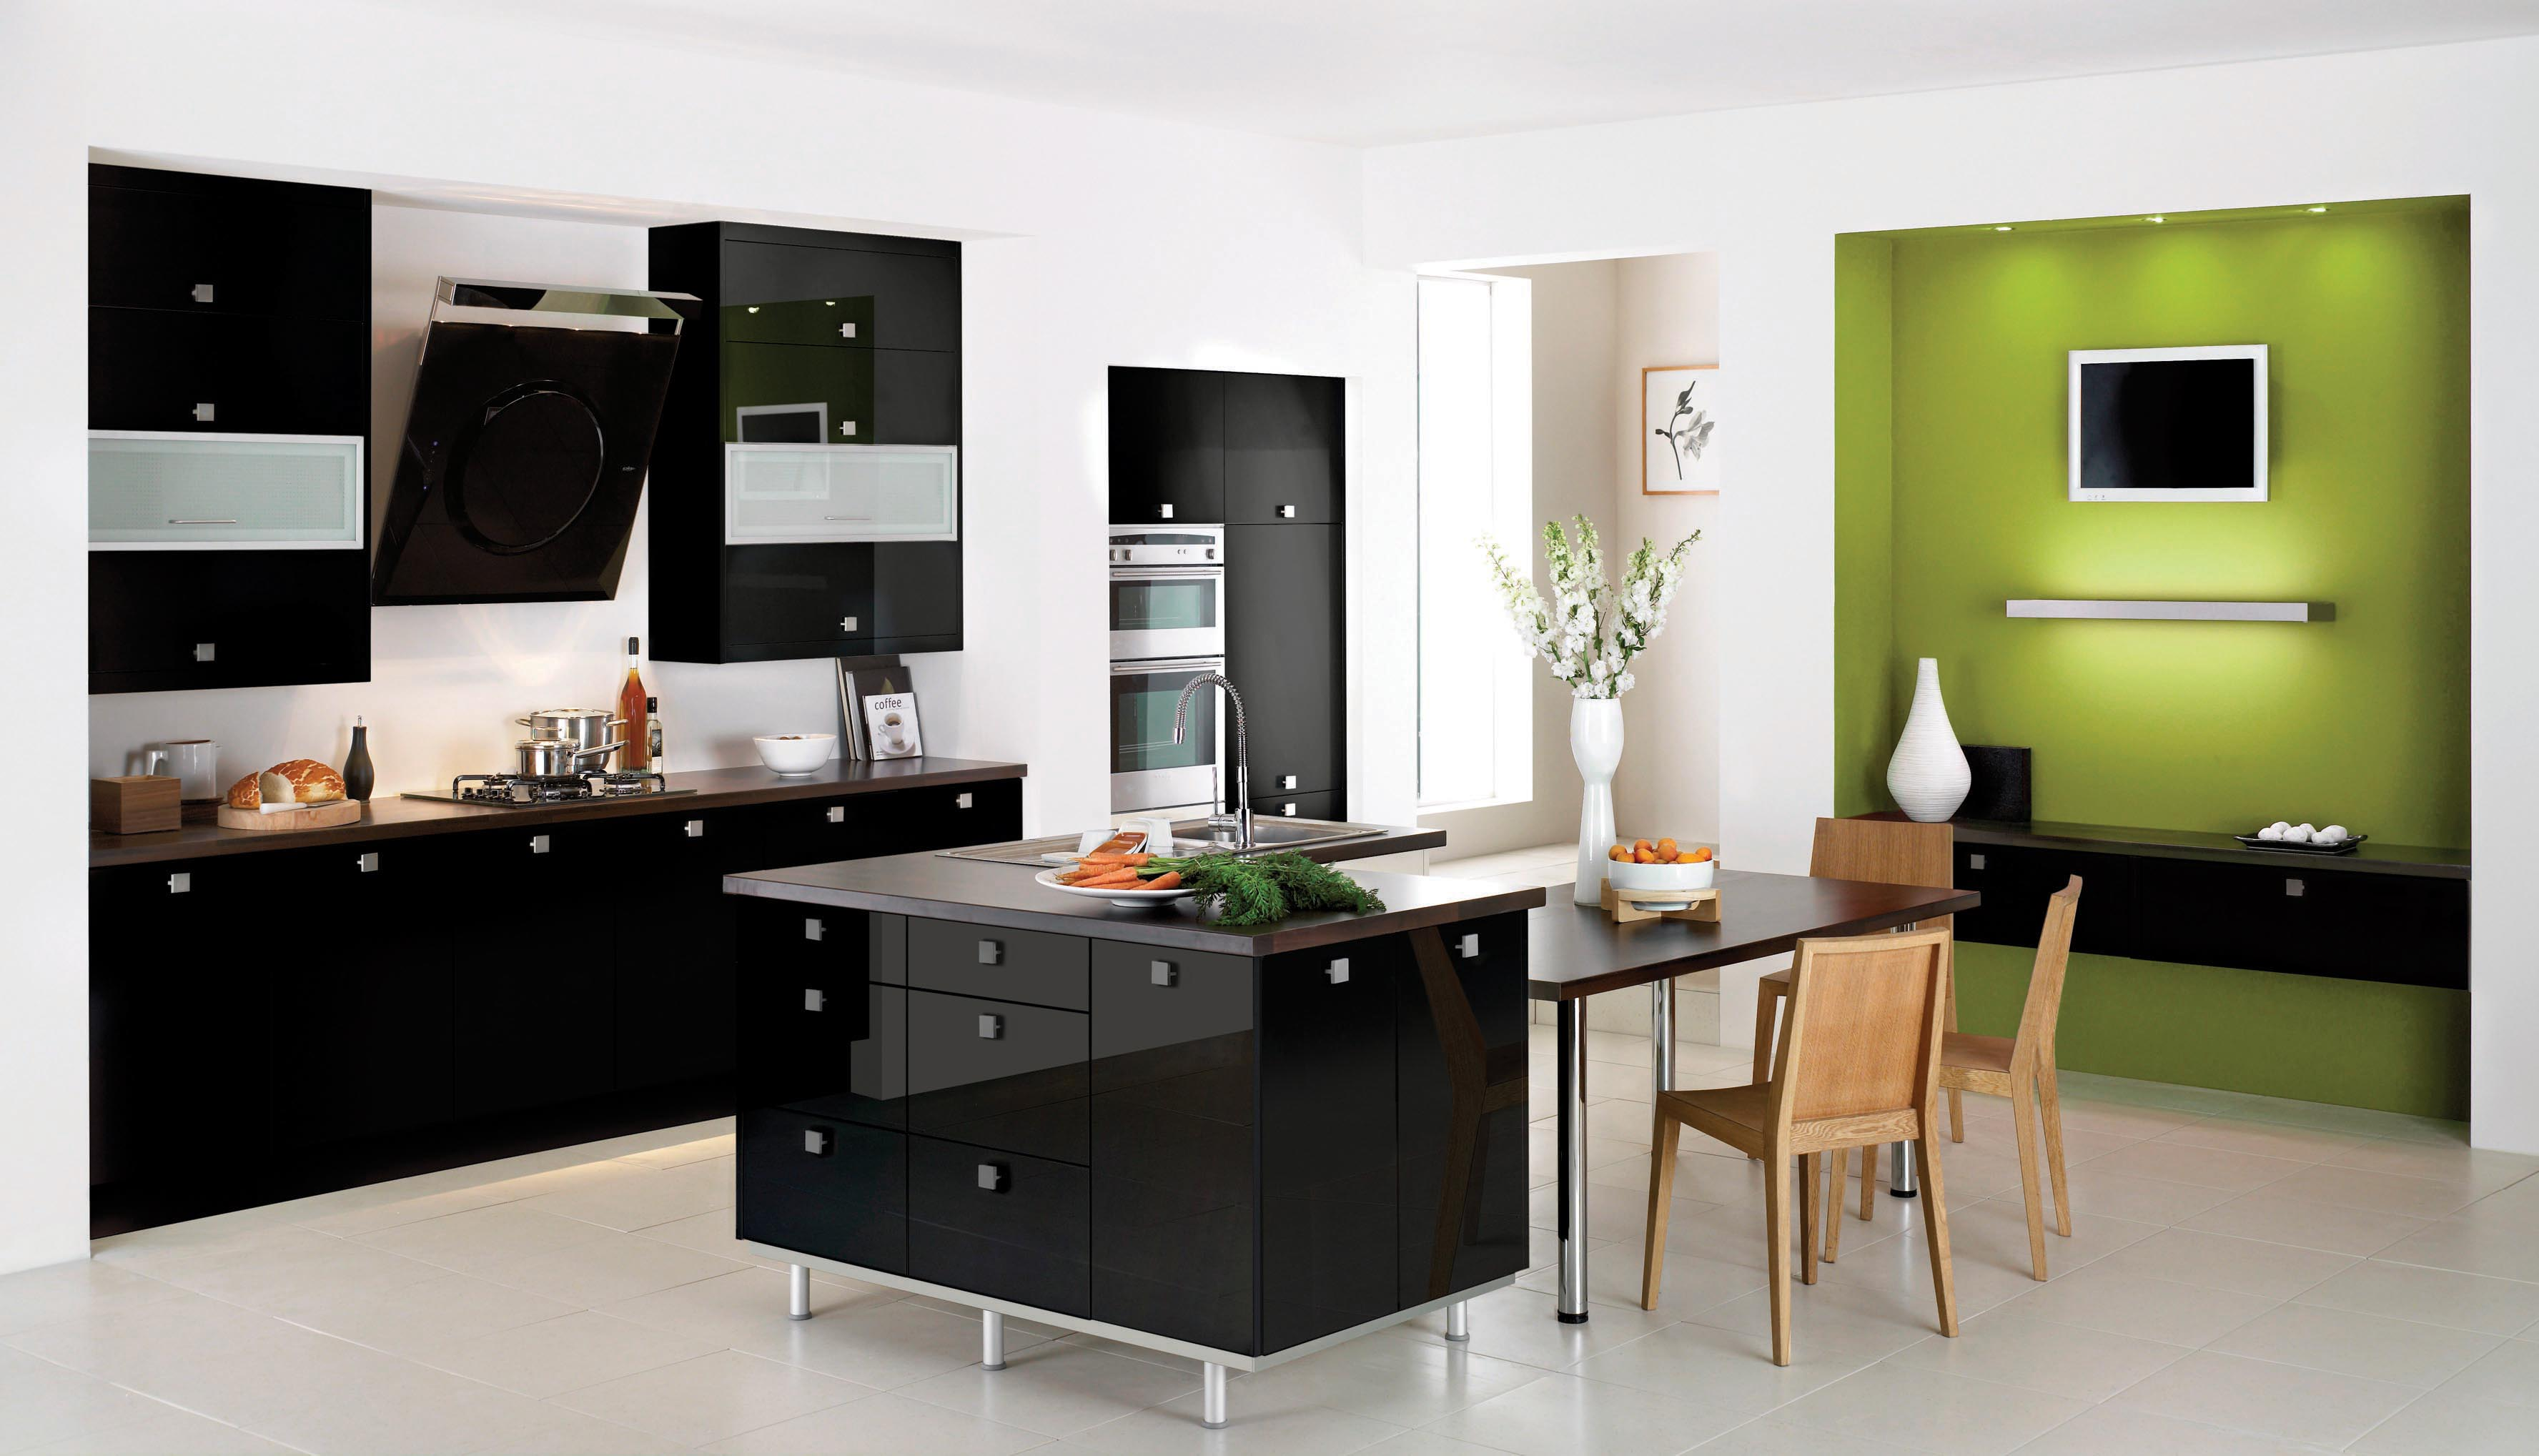 Kitchen Seasoned Kitchen Inspirations Eka3 Cafac